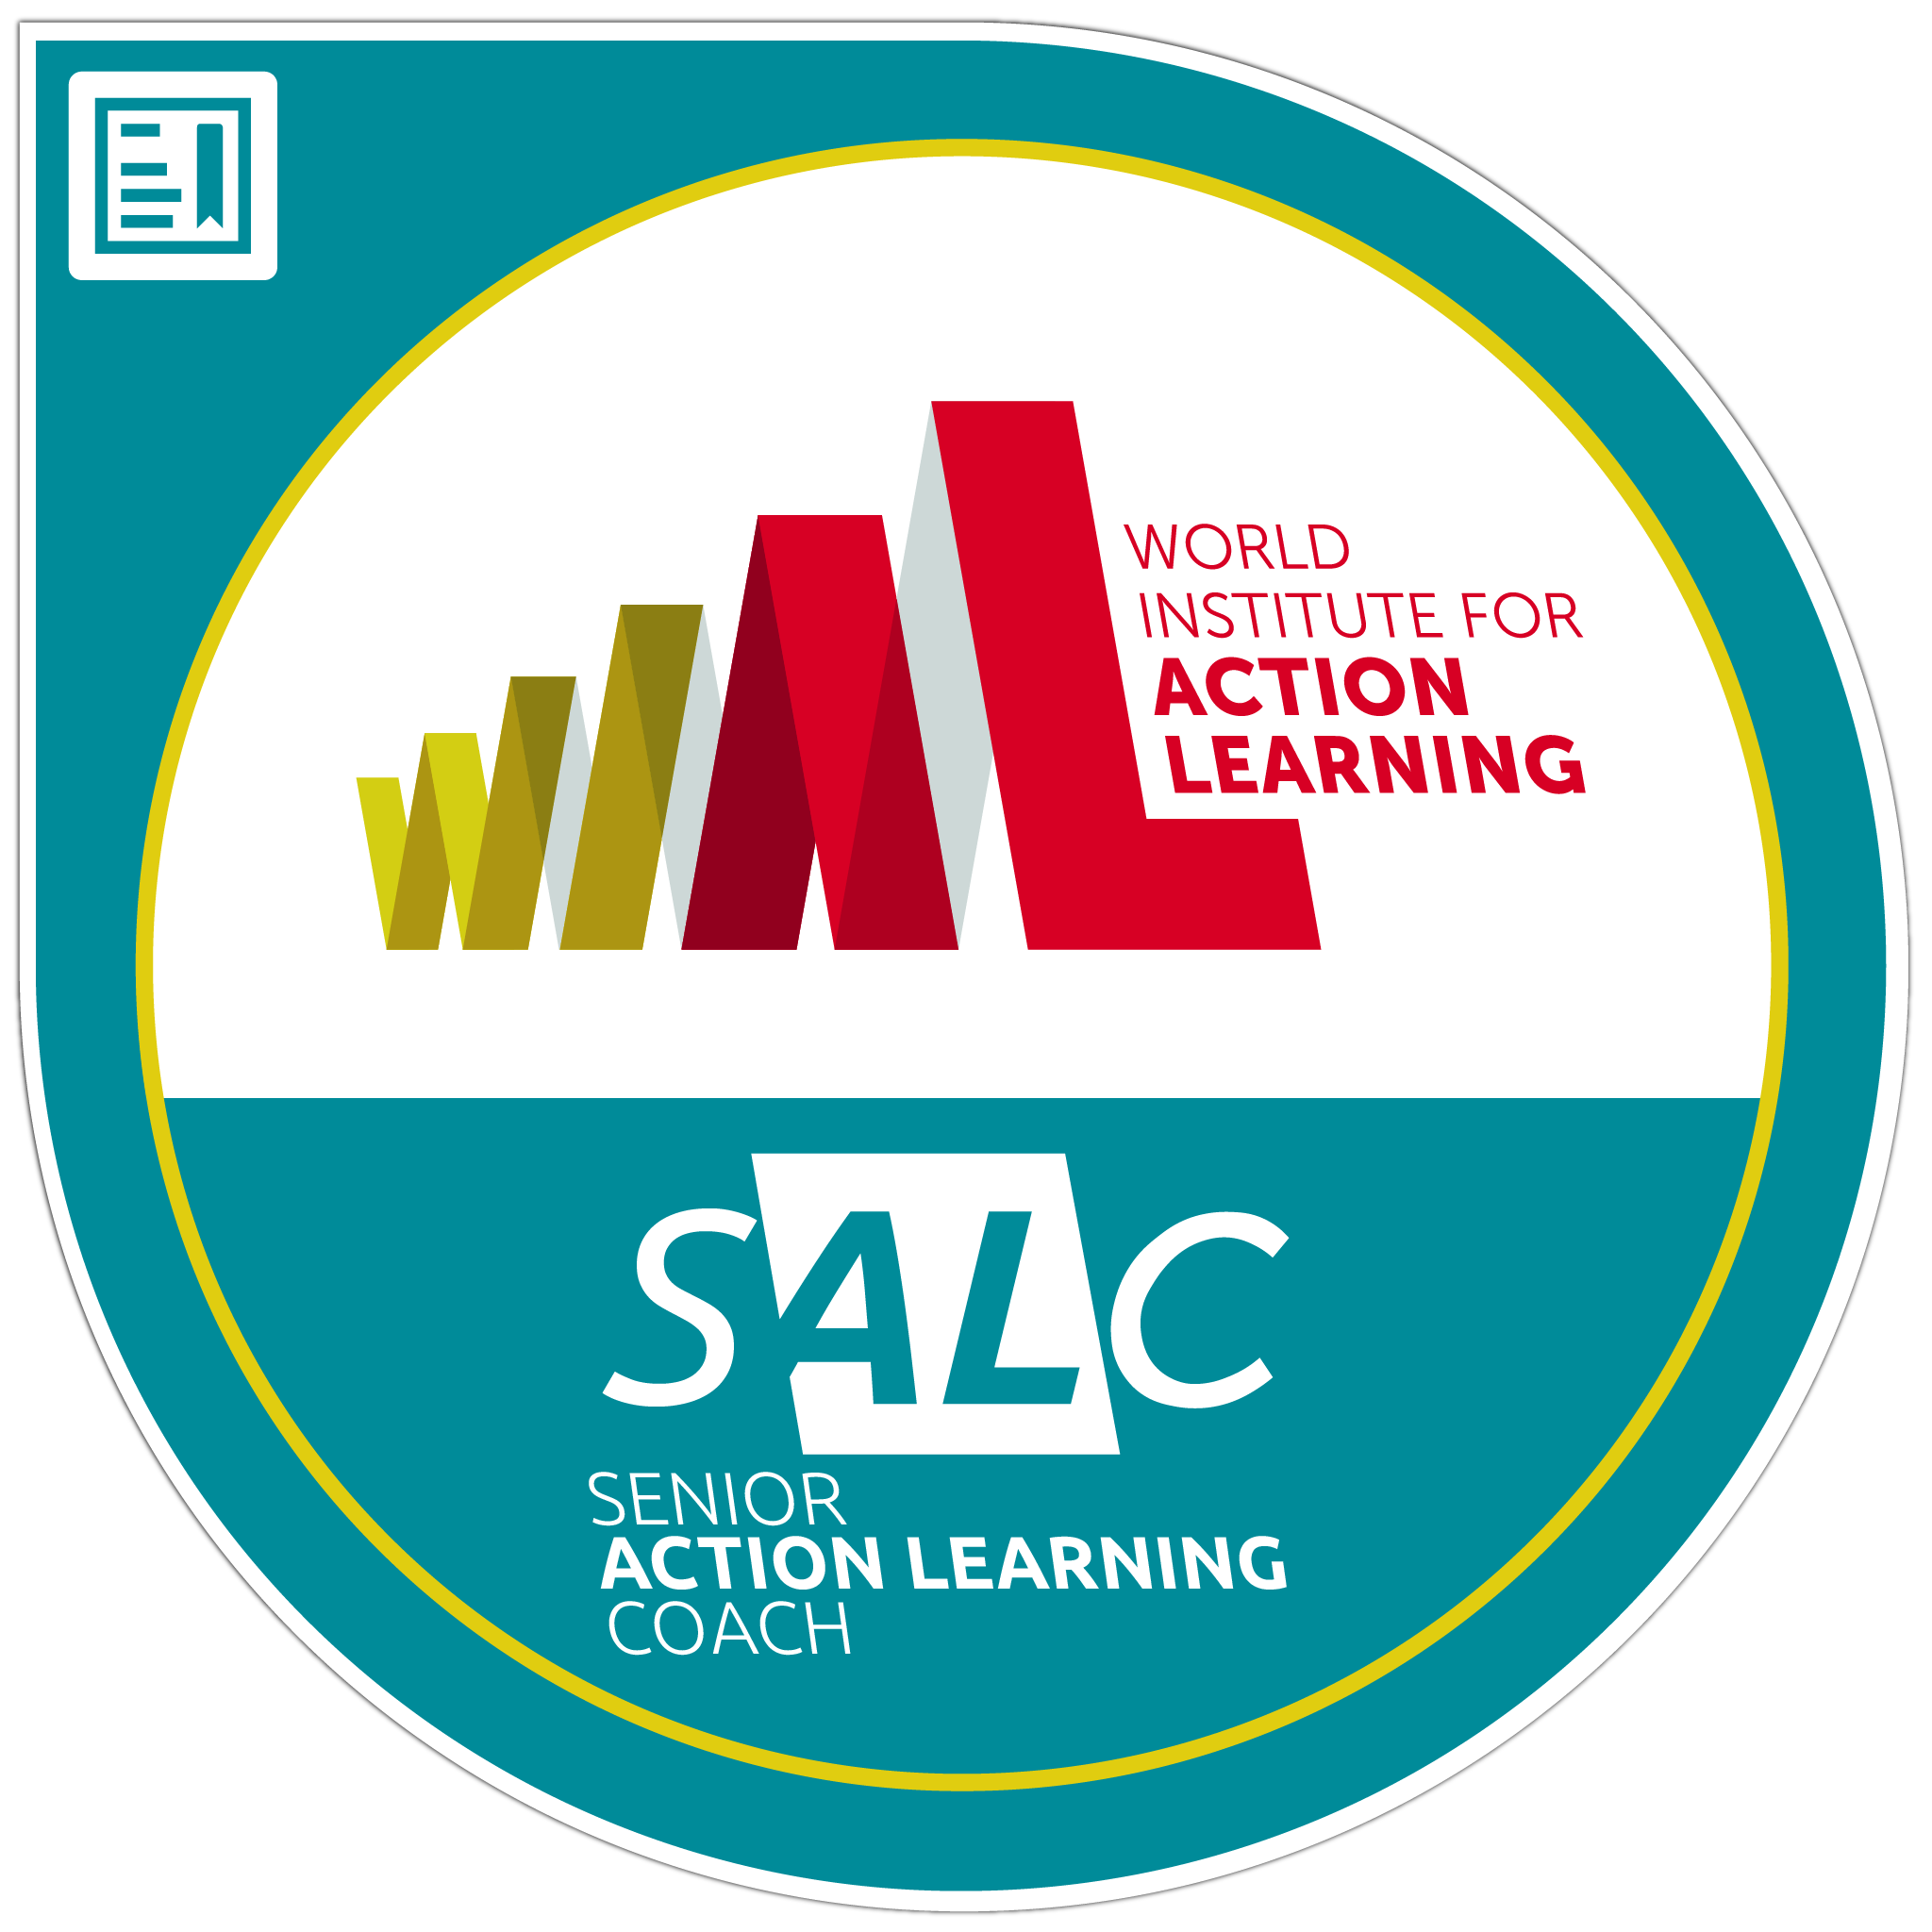 WIAL Senior Action Learning Coach